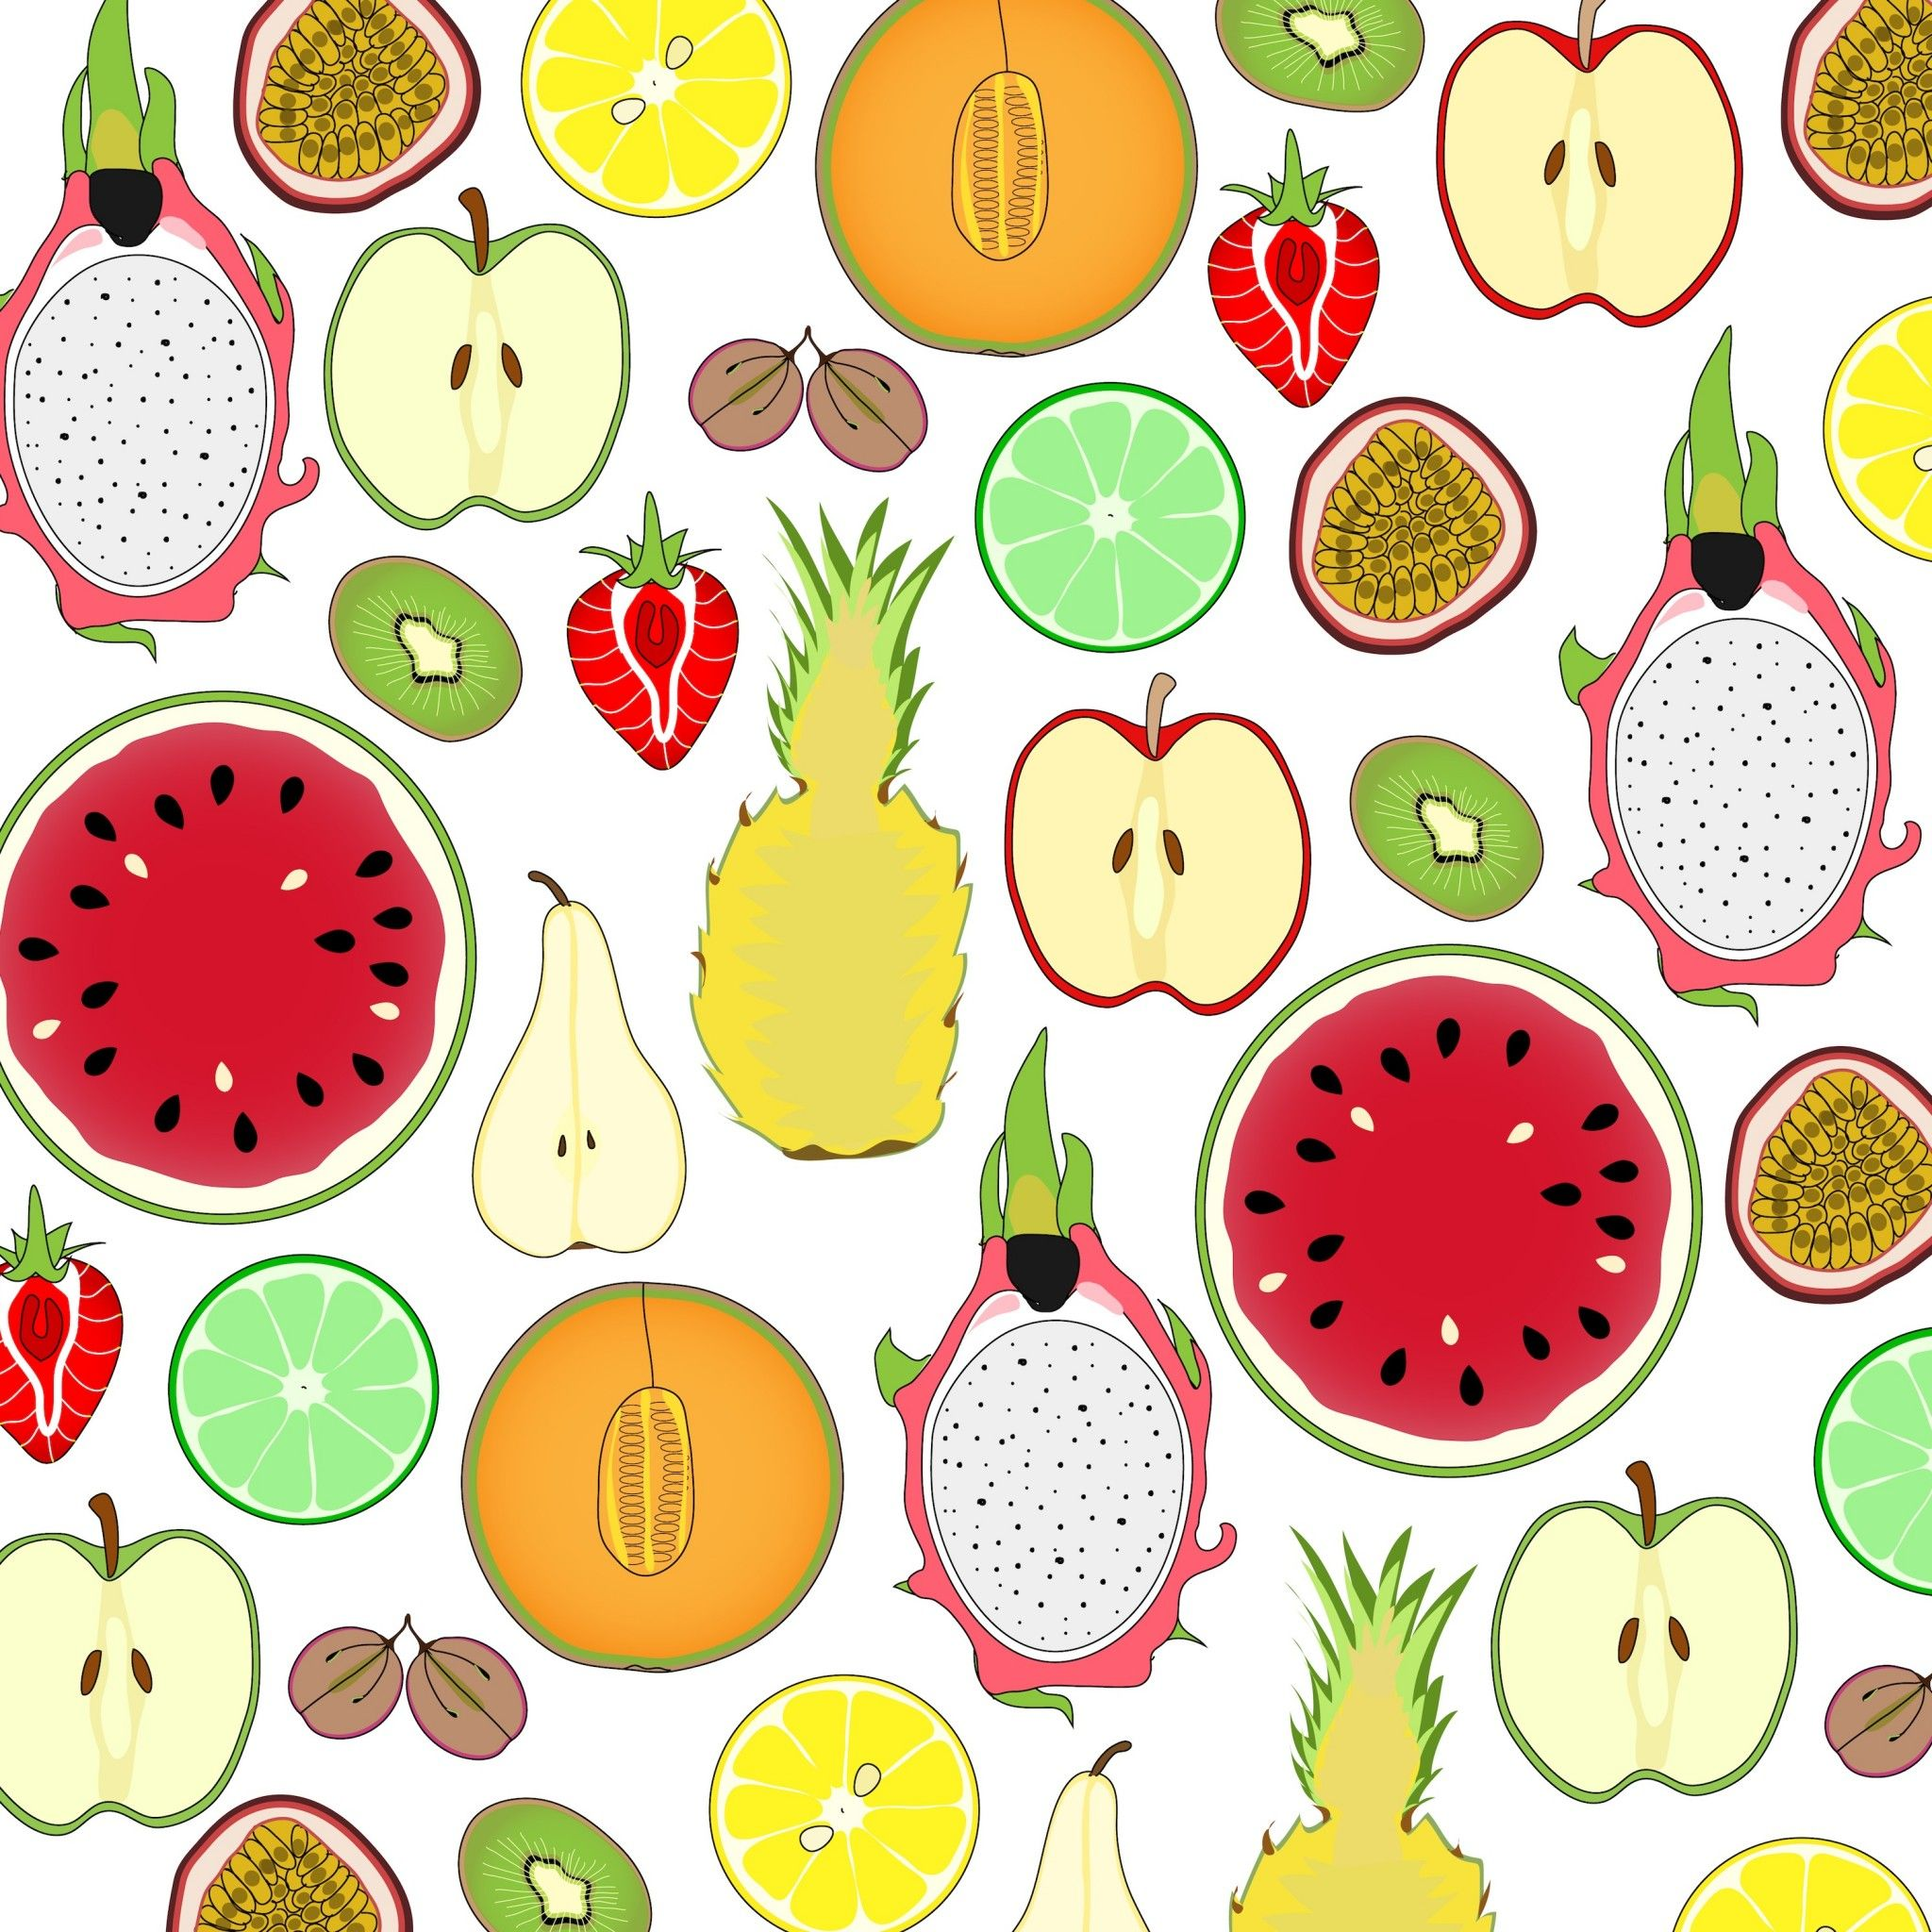 Mixed fruits pattern. Tap image for more fun pattern ...